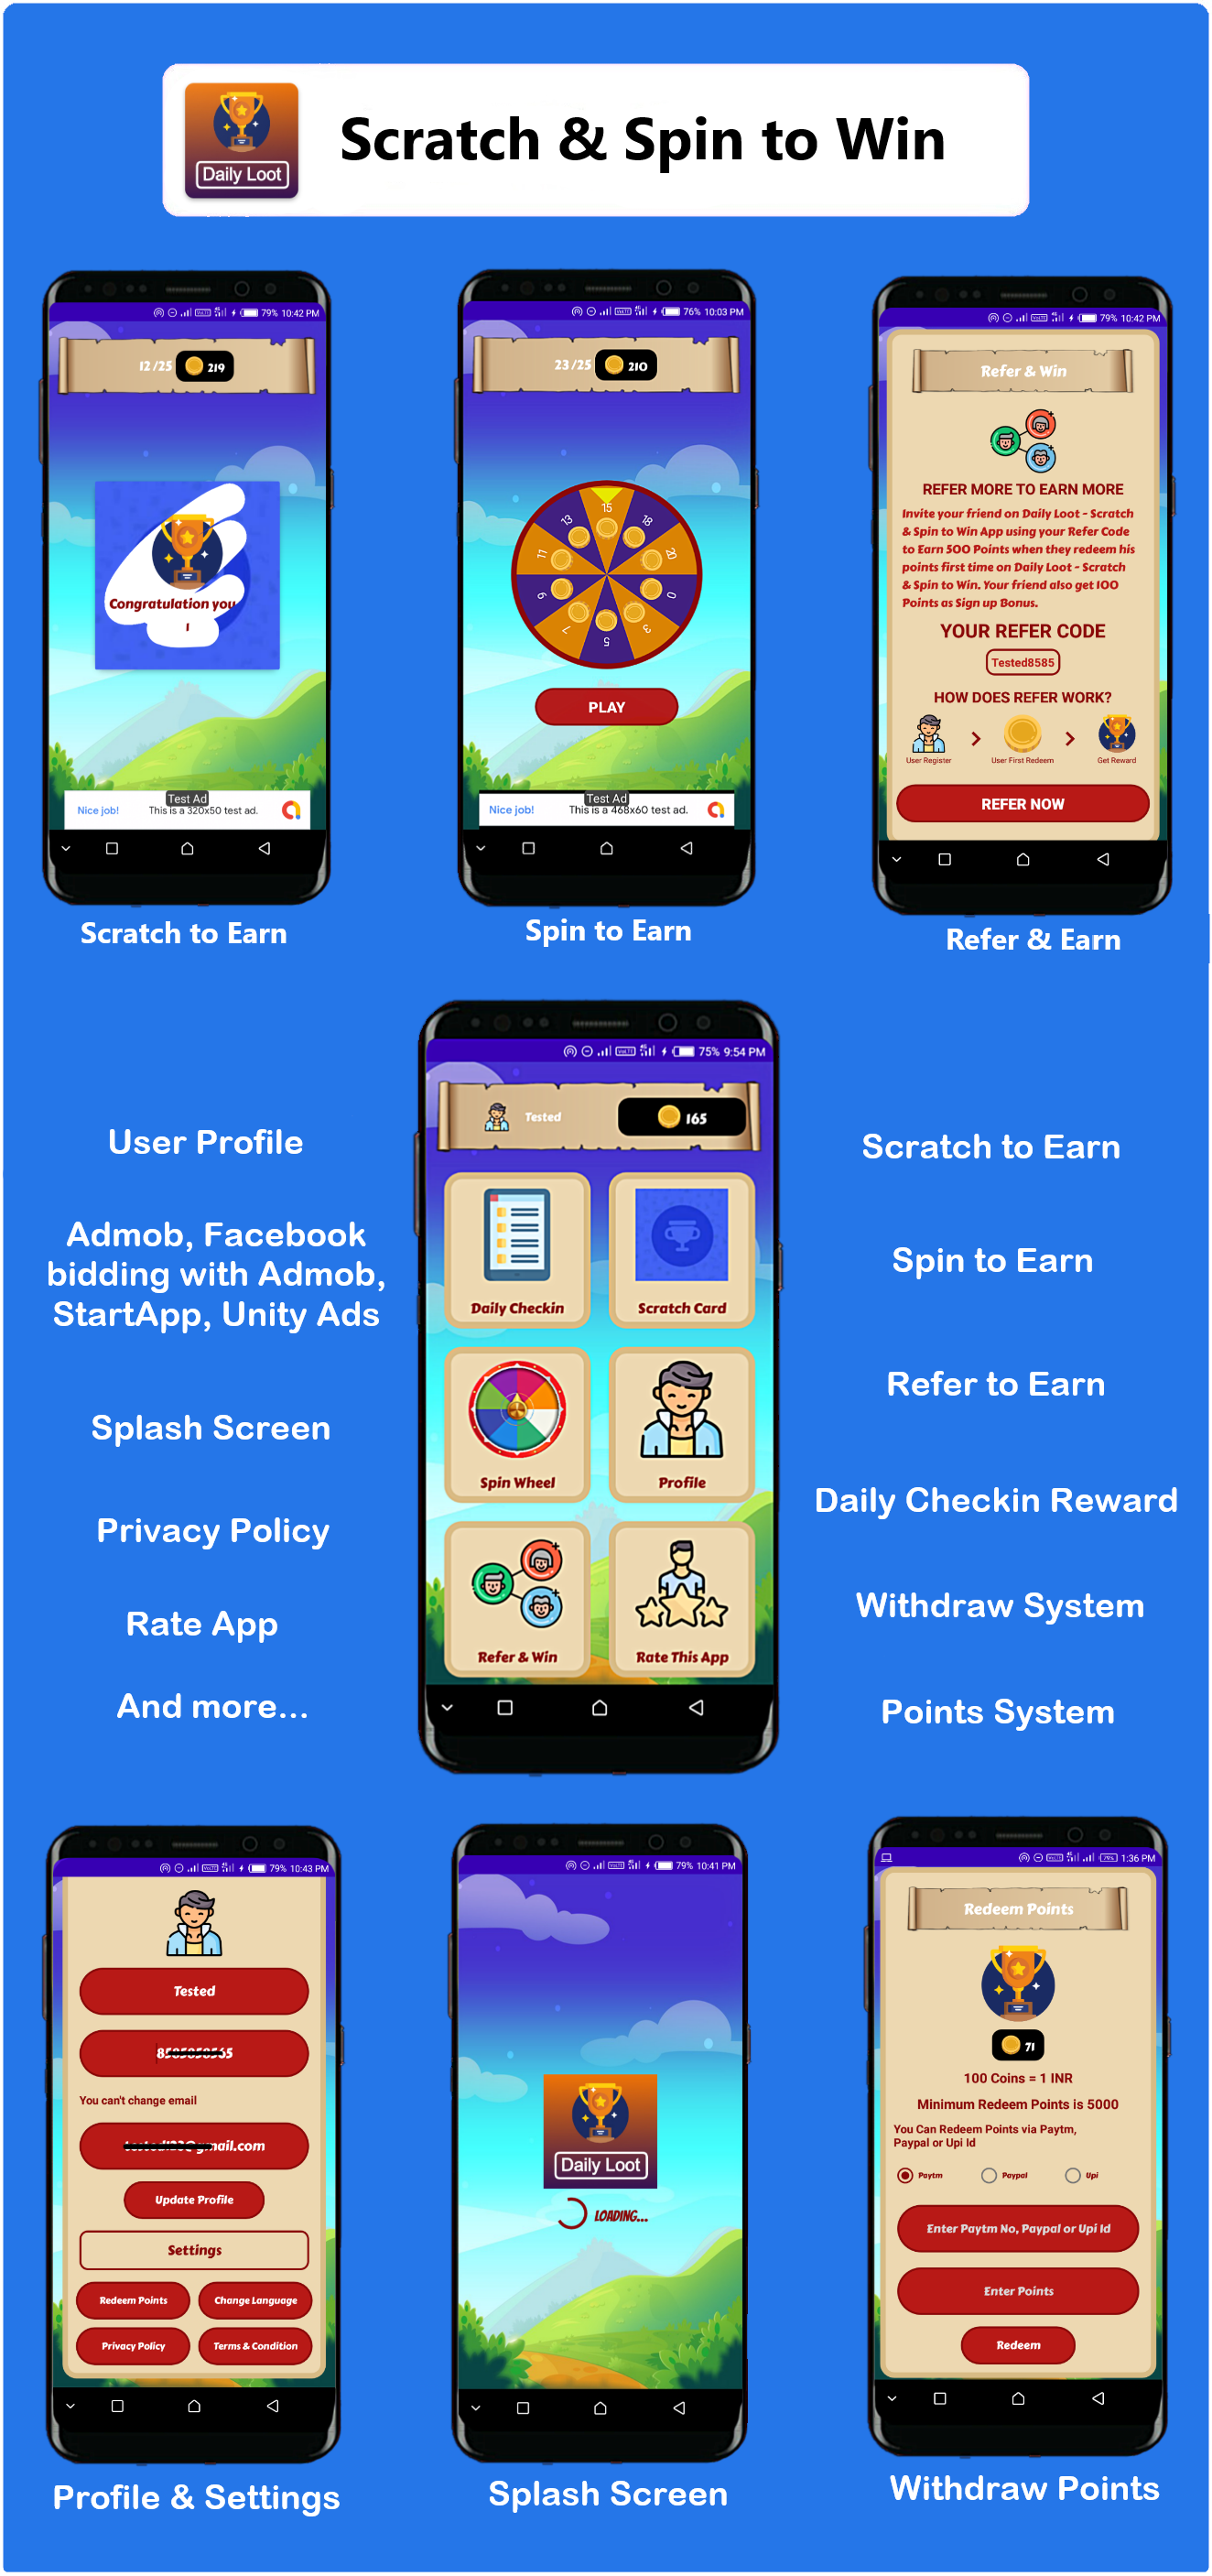 Scratch & Spin to Win Android App with Earning System (Admob, Facebook, Start App Ads) - 3